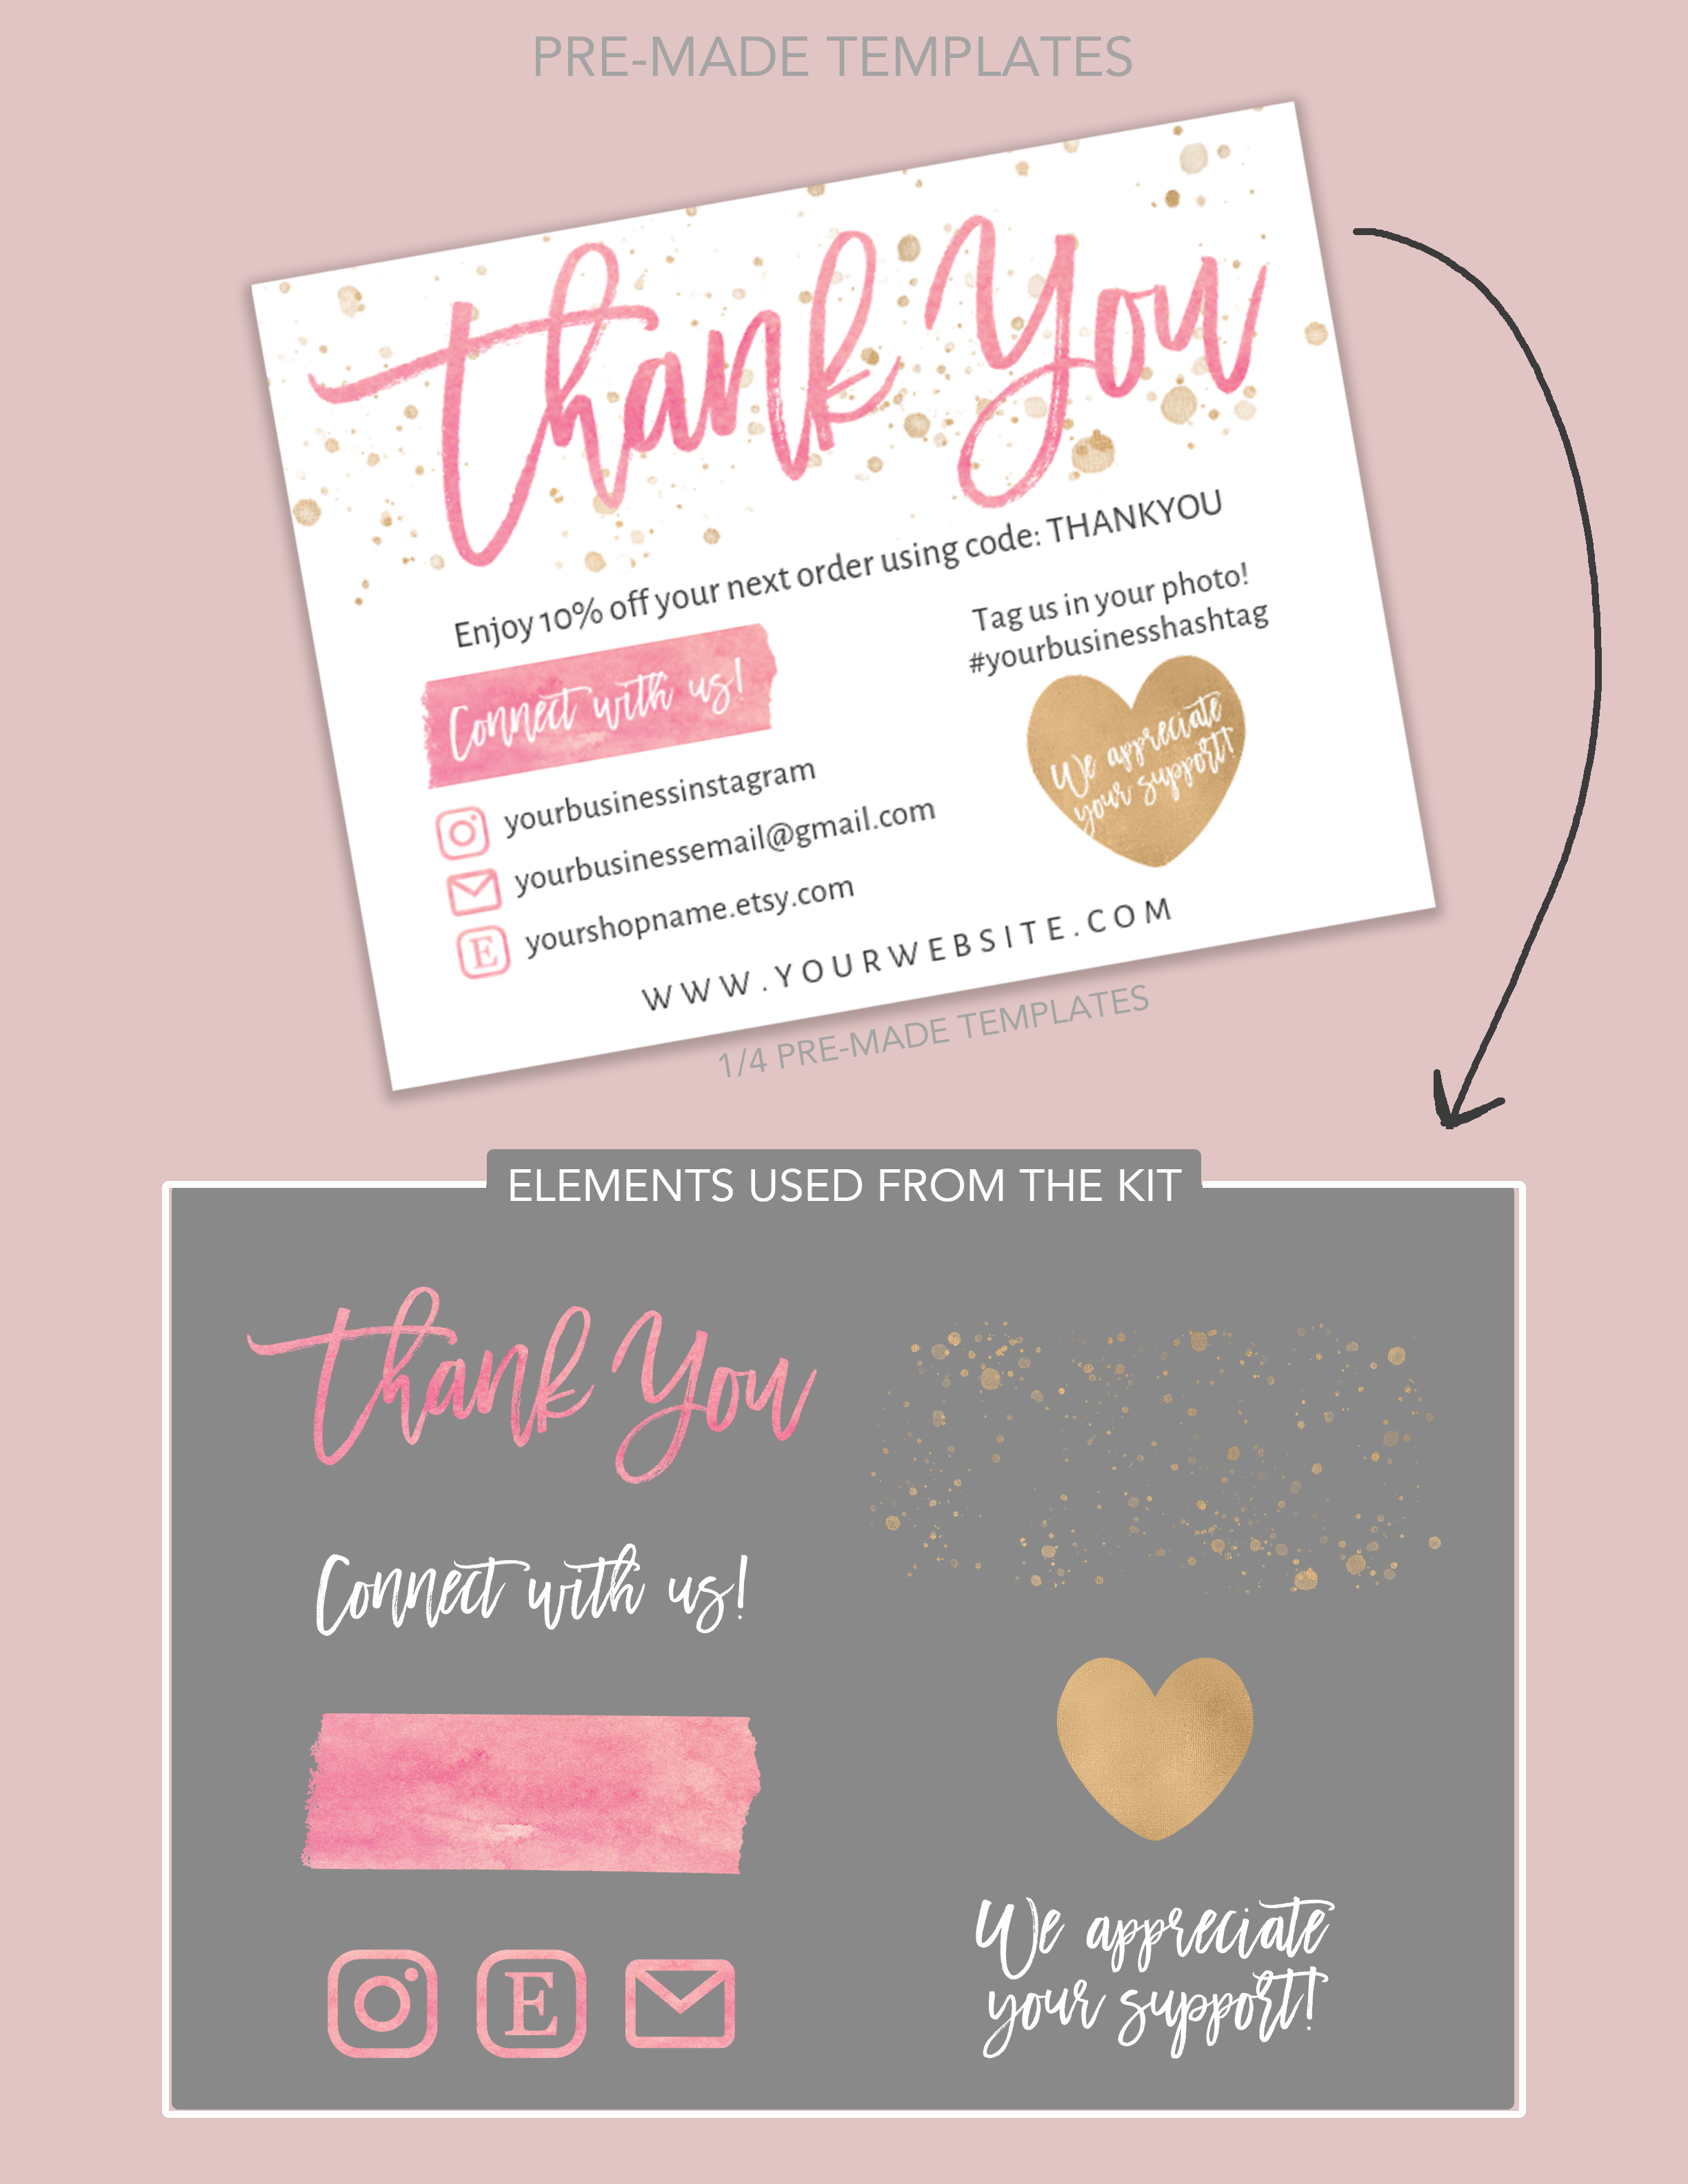 DIY Printable Thank You Card for Your Order - Small Business Card - Add logo, Social Media Icons - Instagram, Poshmark, Etsy, Website, Email #businessthankyoucards